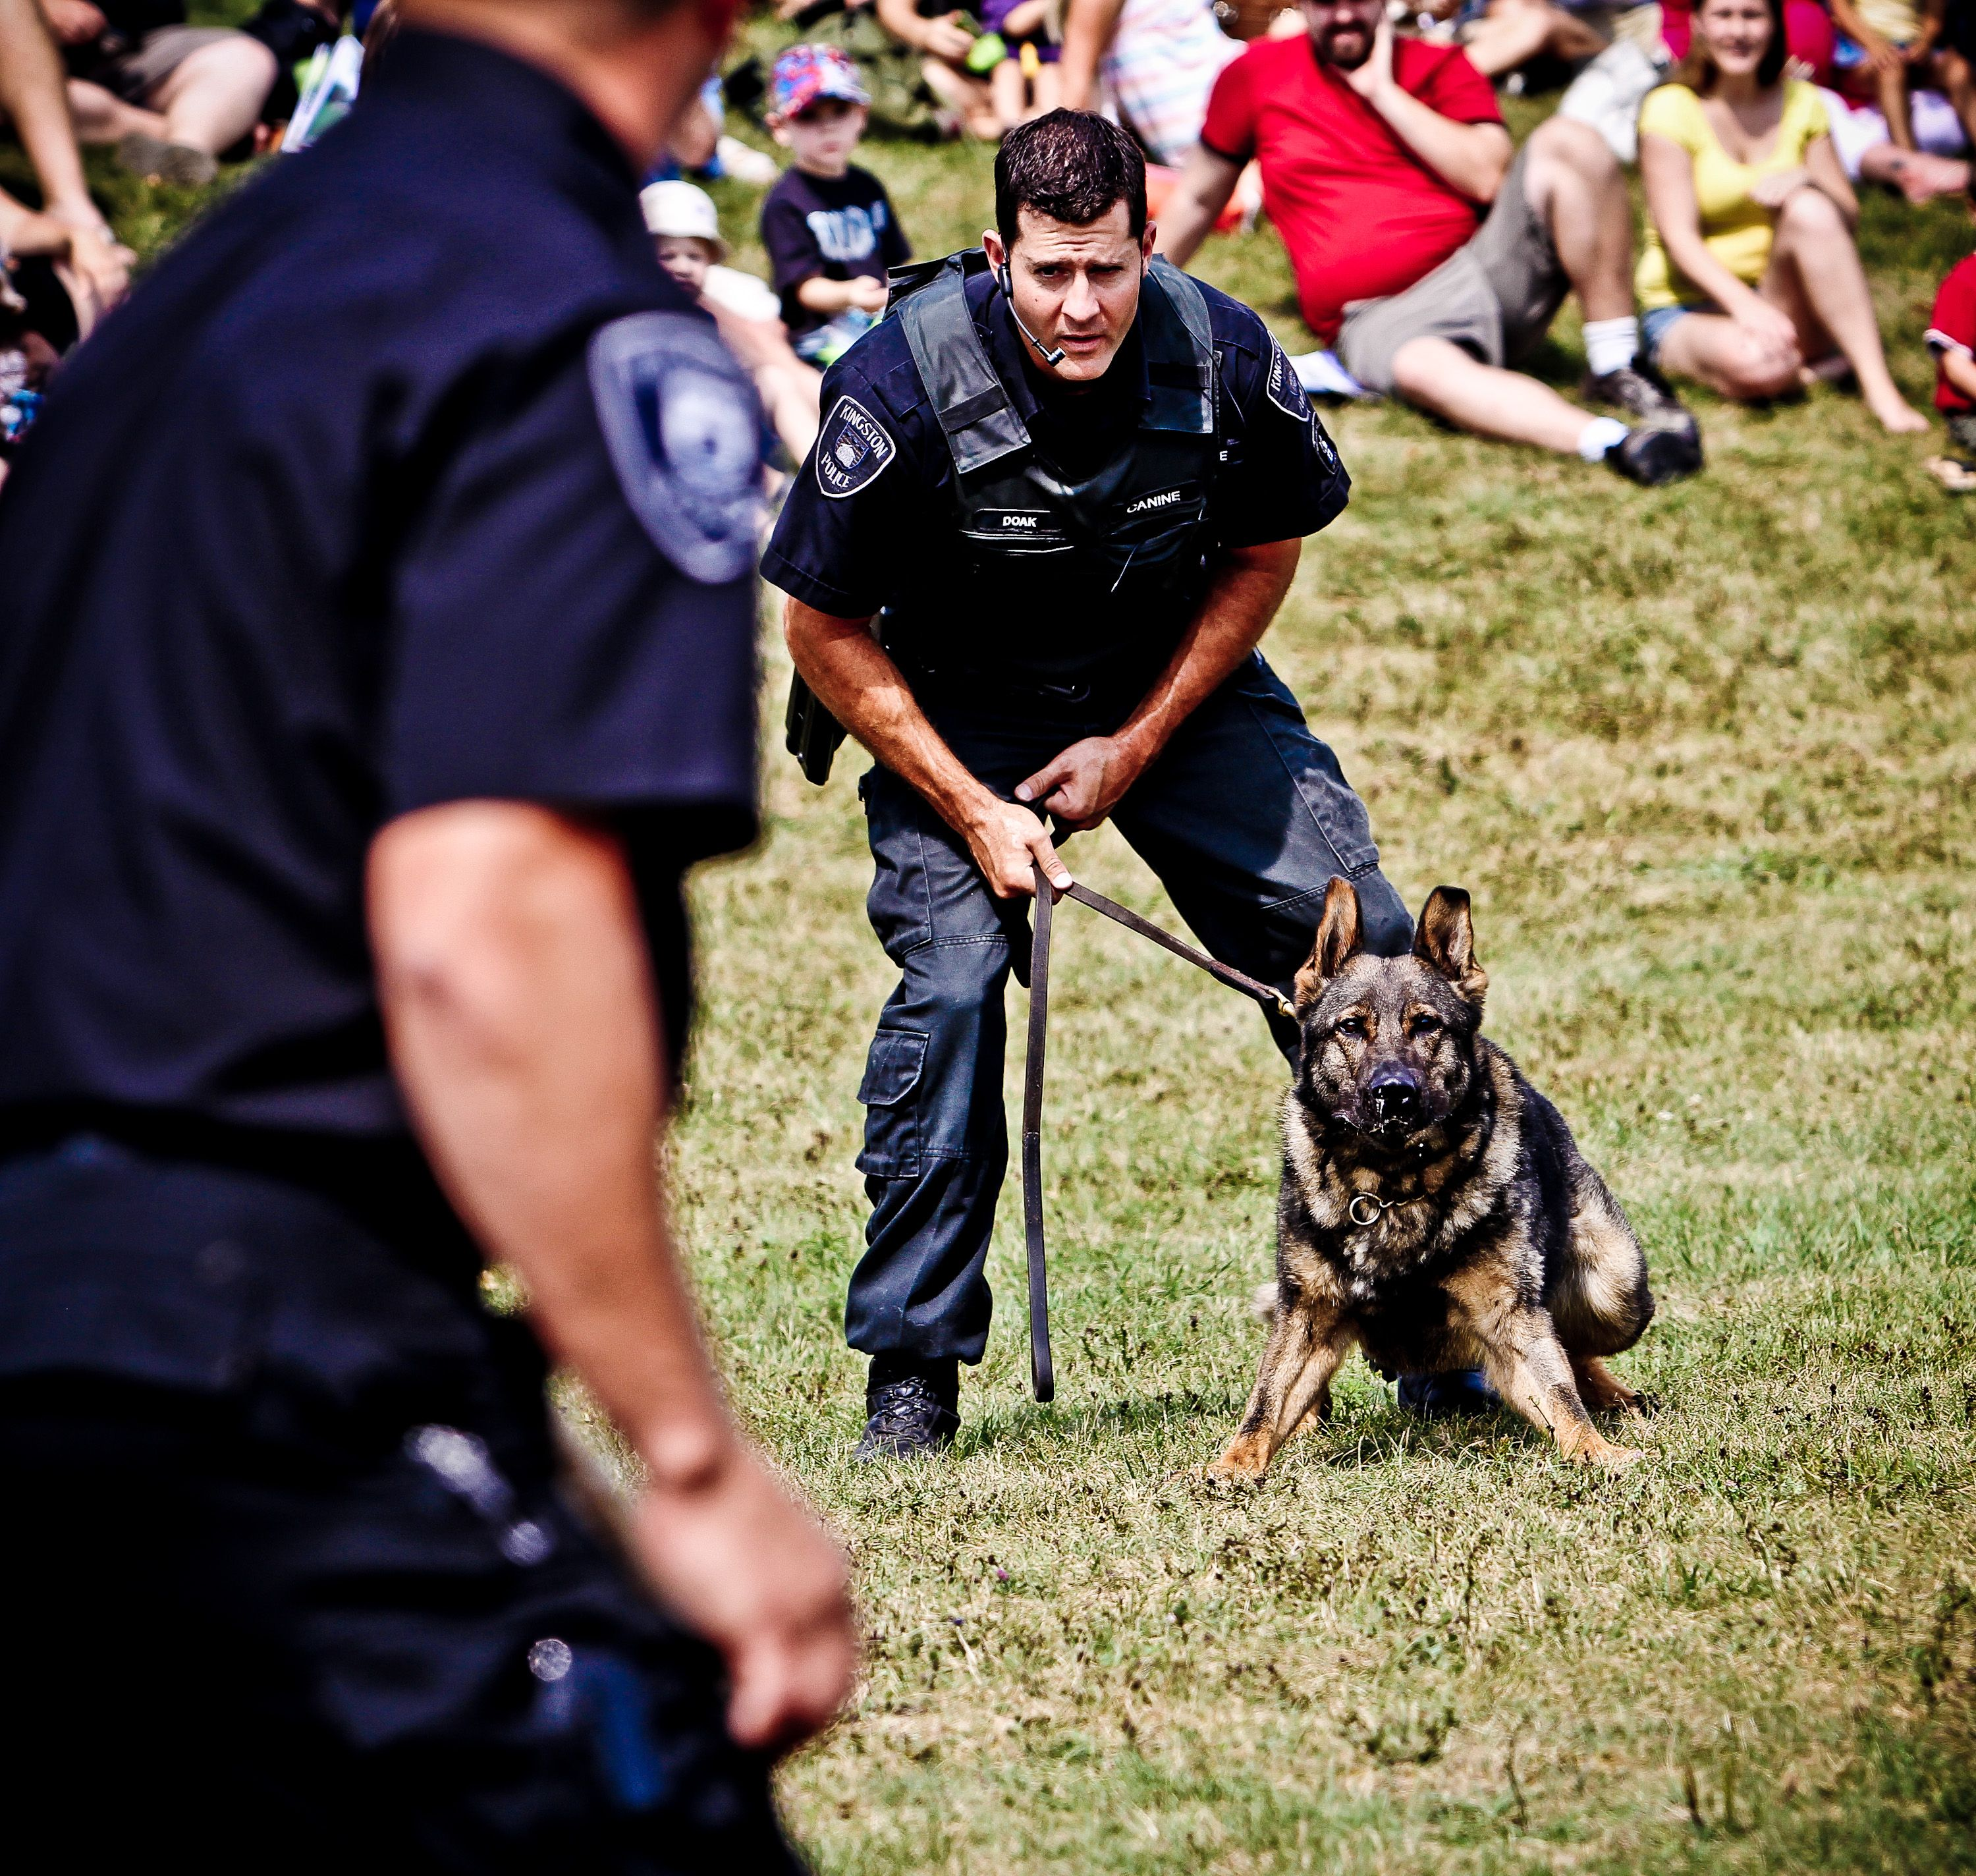 Canine Officer Paul Doak And His Partner Knox Demonstrating Their Abilities At Kingston S Annual Sheep Dog Trials Working Dogs Canine Police Dogs